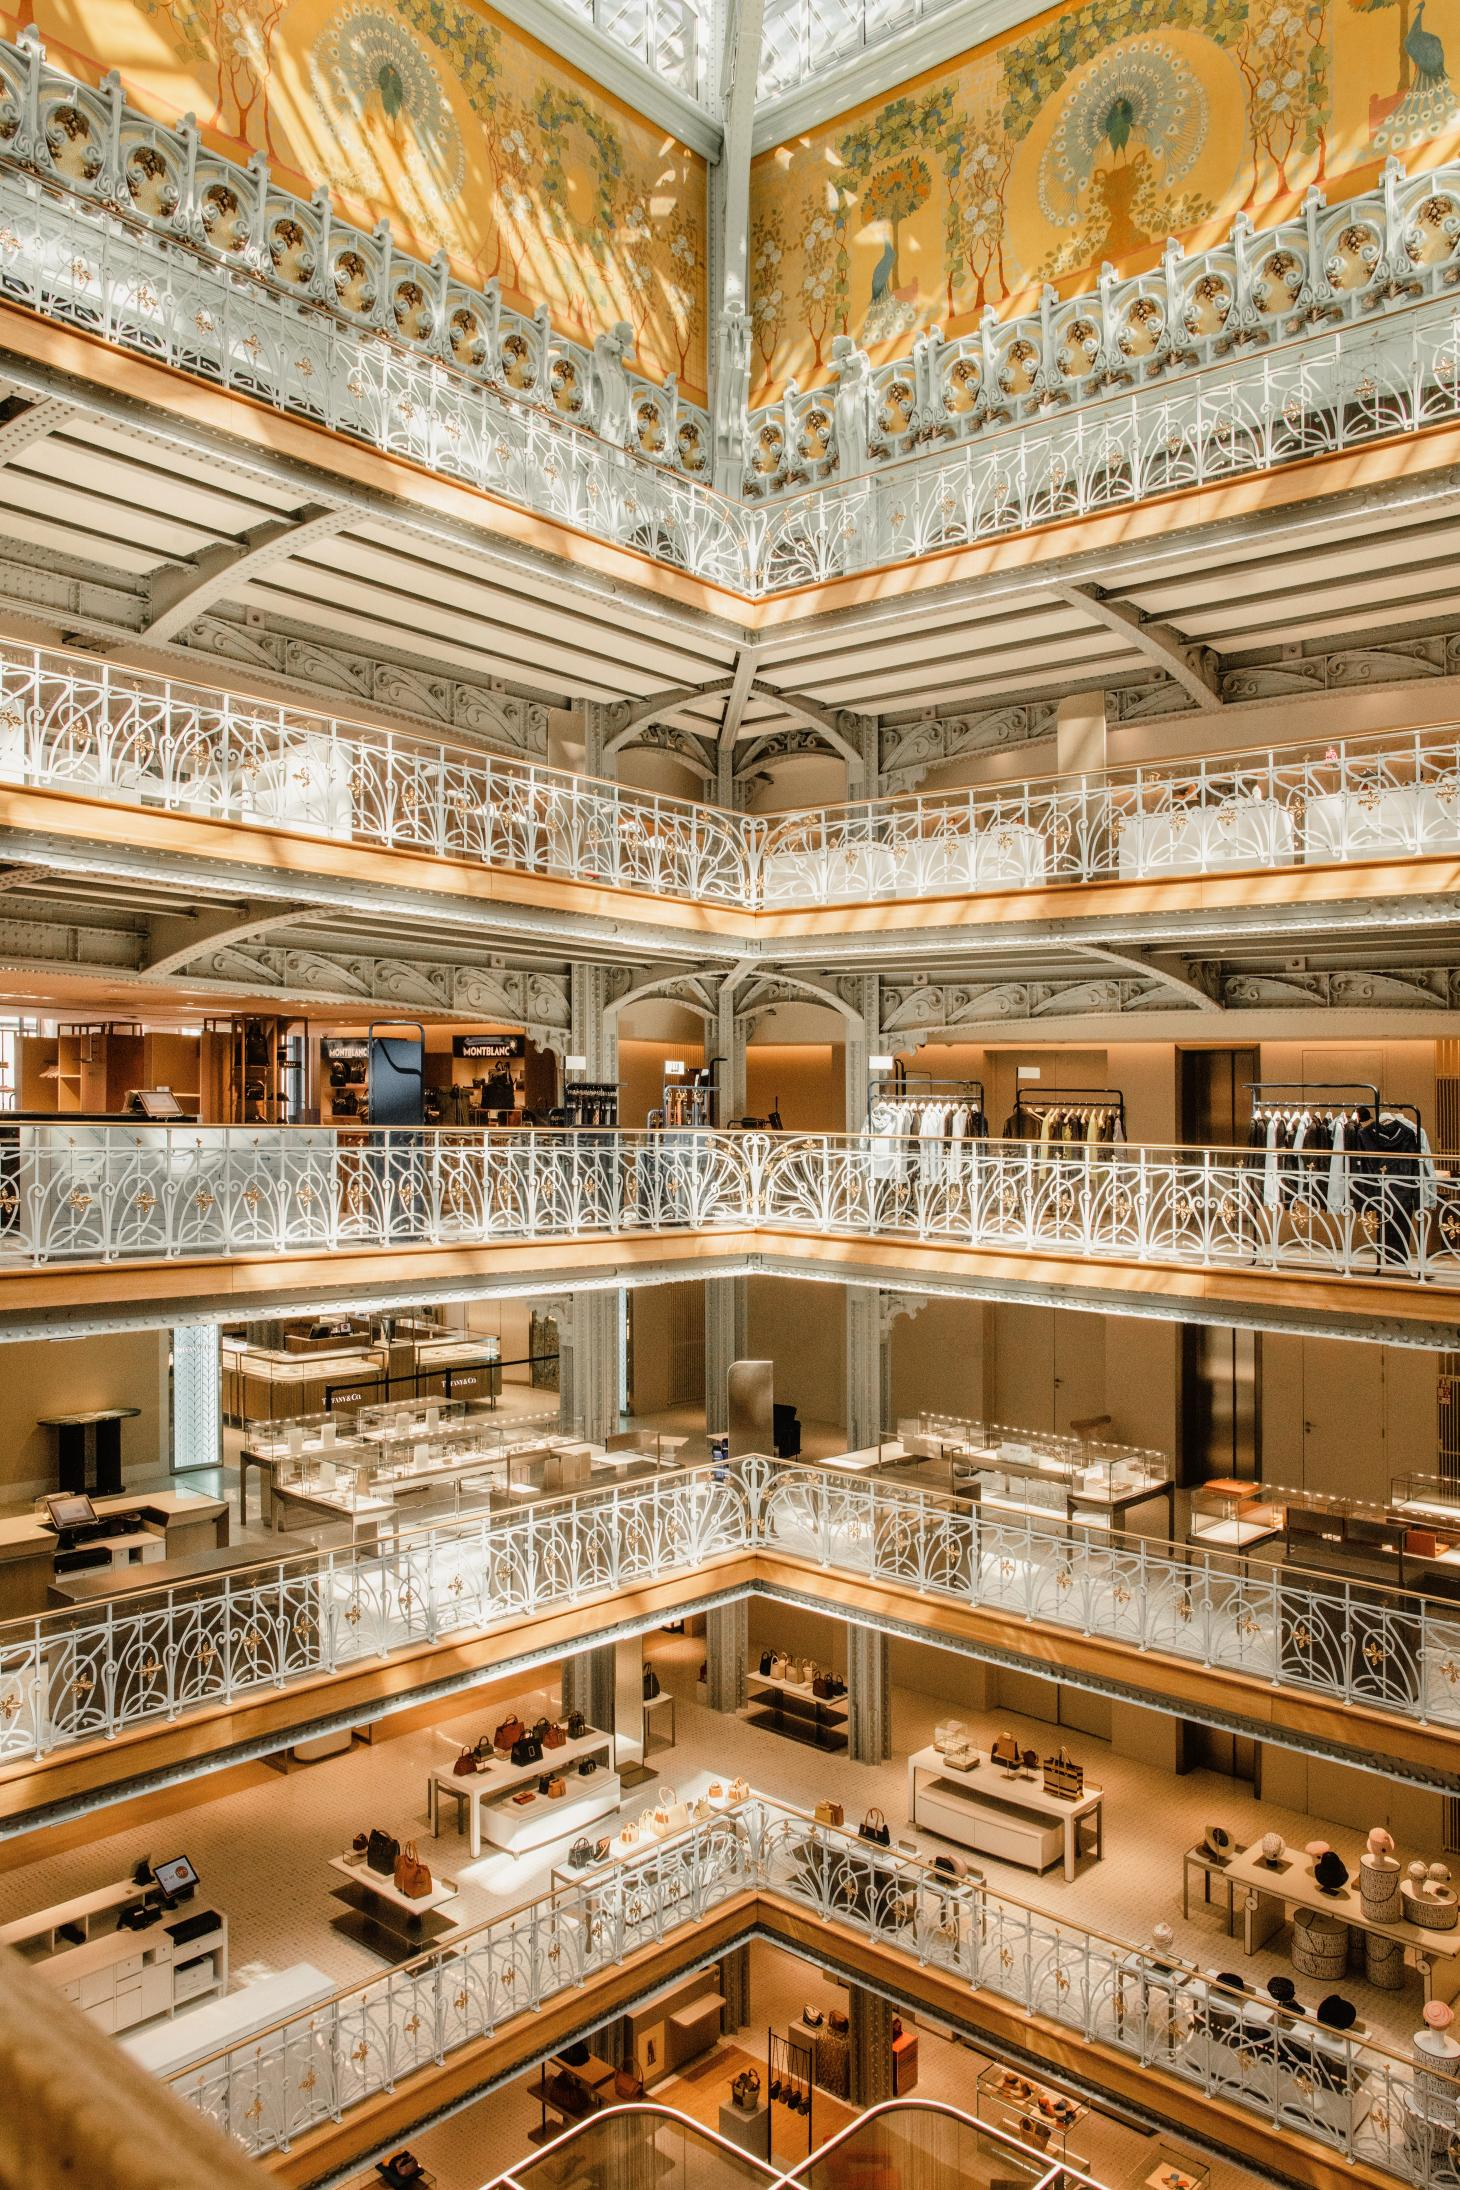 an internal central courtyard shows off La Samaritaine in all its historical, renovated glory